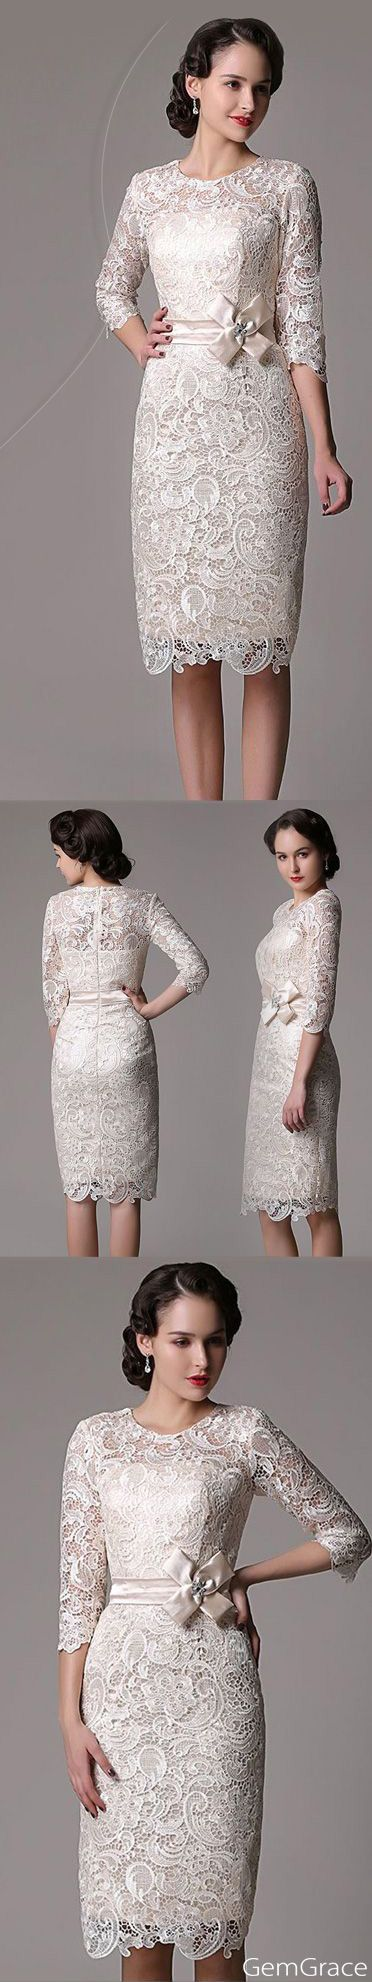 Elegant lace sleeve dress. With trendy 3/4 sleeve design, it is nice for mother of the bride or groom too. One fab dress is loved by many many women. Custom color or size is free at GemGrace.com